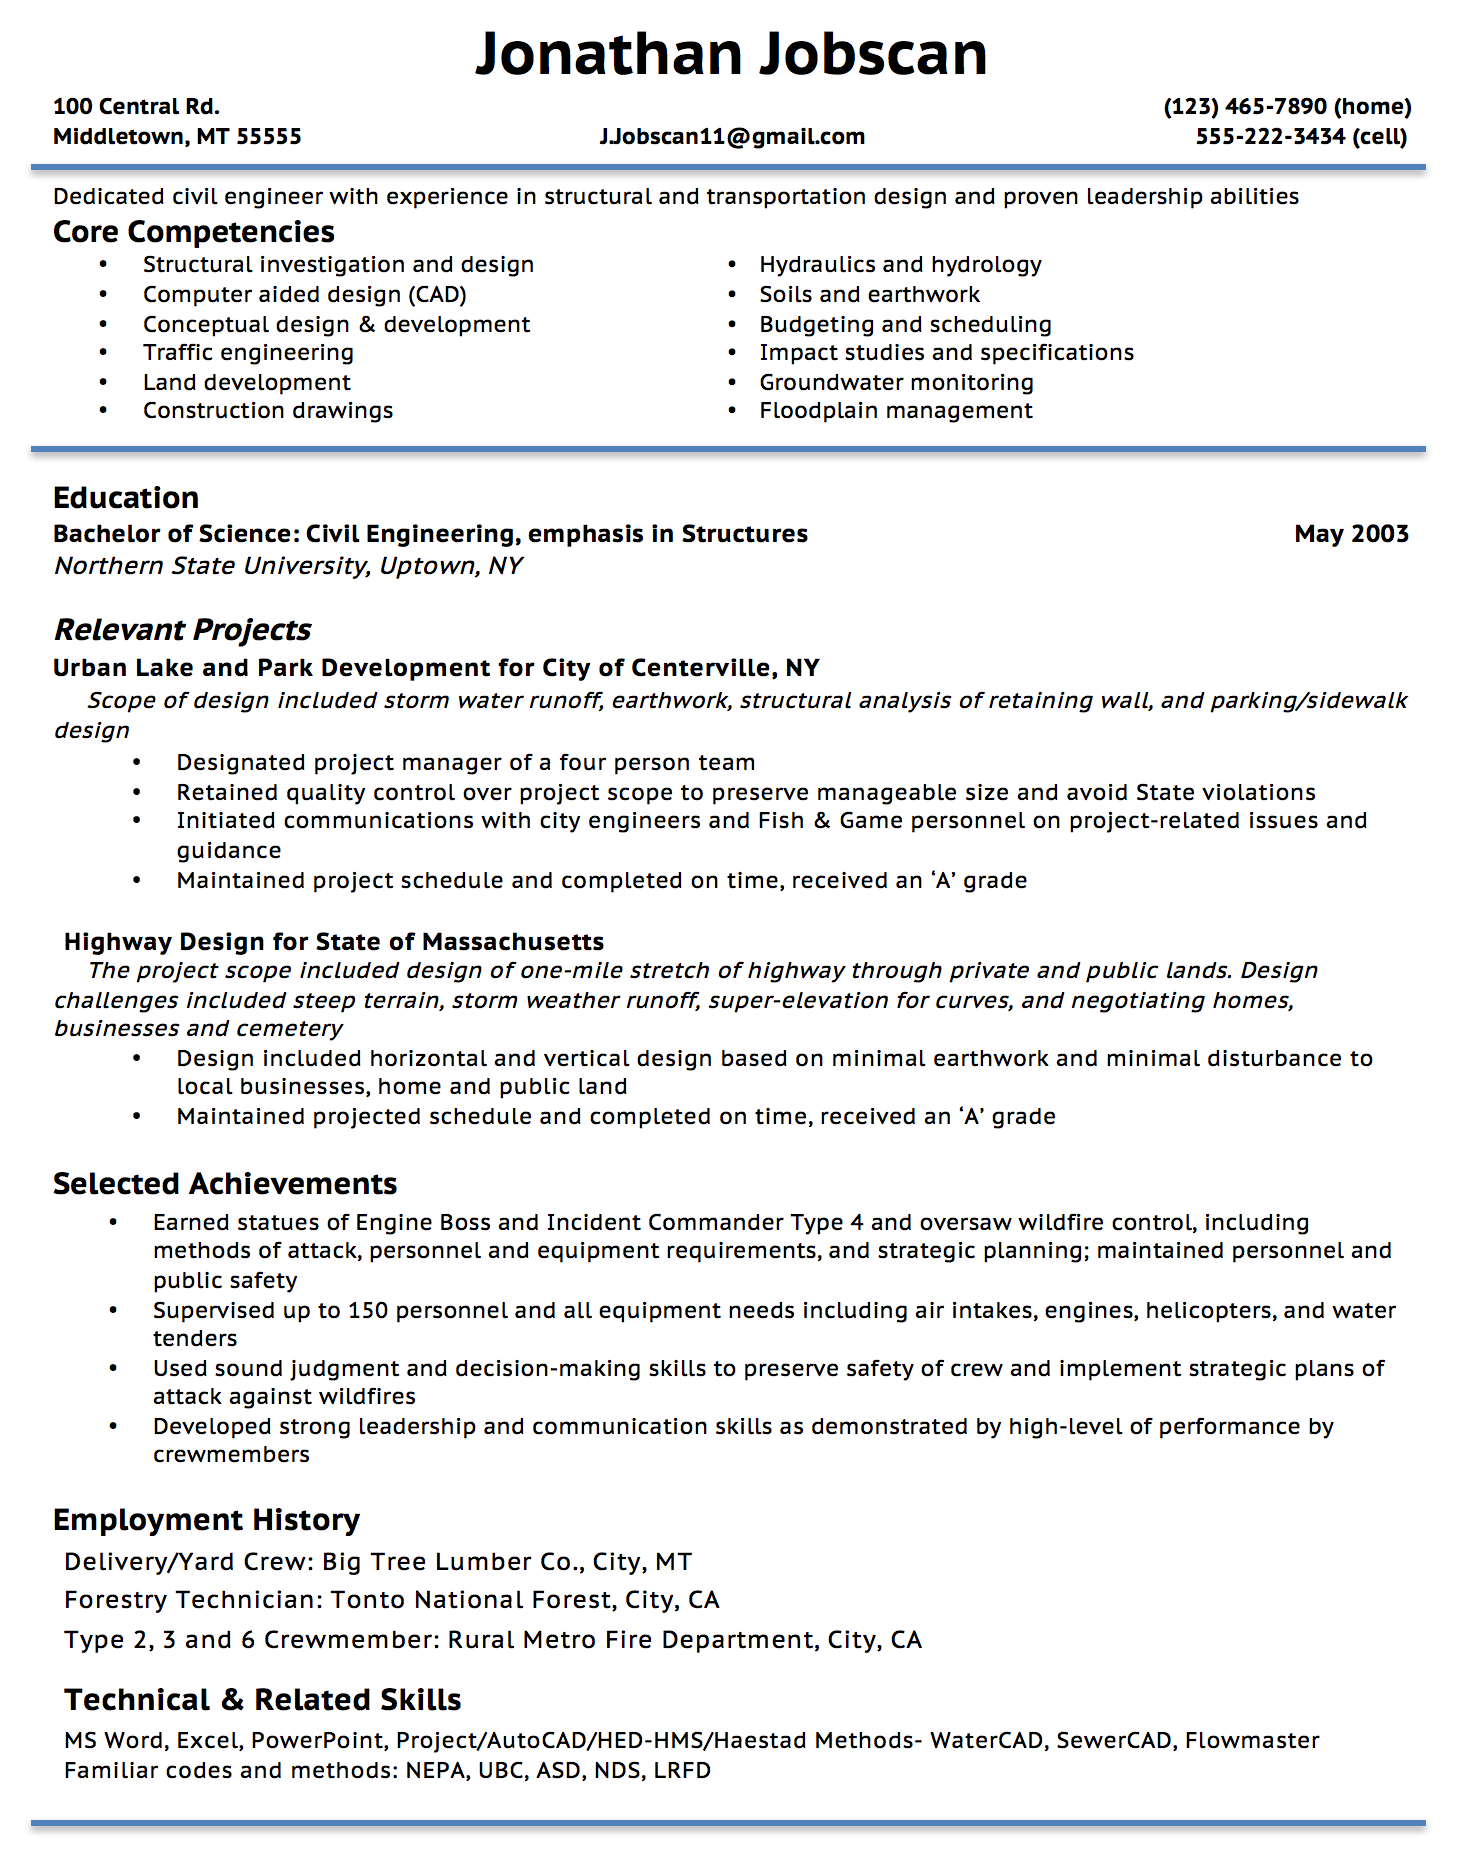 Opposenewapstandardsus  Mesmerizing Resume Writing Guide  Jobscan With Exquisite Example Of A Functional Resume Format With Archaic Write A Resume For Me Also Job Objectives For Resumes In Addition Cashier Skills For Resume And Sample Resume For Office Manager As Well As Resume For High School Student With No Experience Additionally Sample Resume For Bank Teller From Jobscanco With Opposenewapstandardsus  Exquisite Resume Writing Guide  Jobscan With Archaic Example Of A Functional Resume Format And Mesmerizing Write A Resume For Me Also Job Objectives For Resumes In Addition Cashier Skills For Resume From Jobscanco